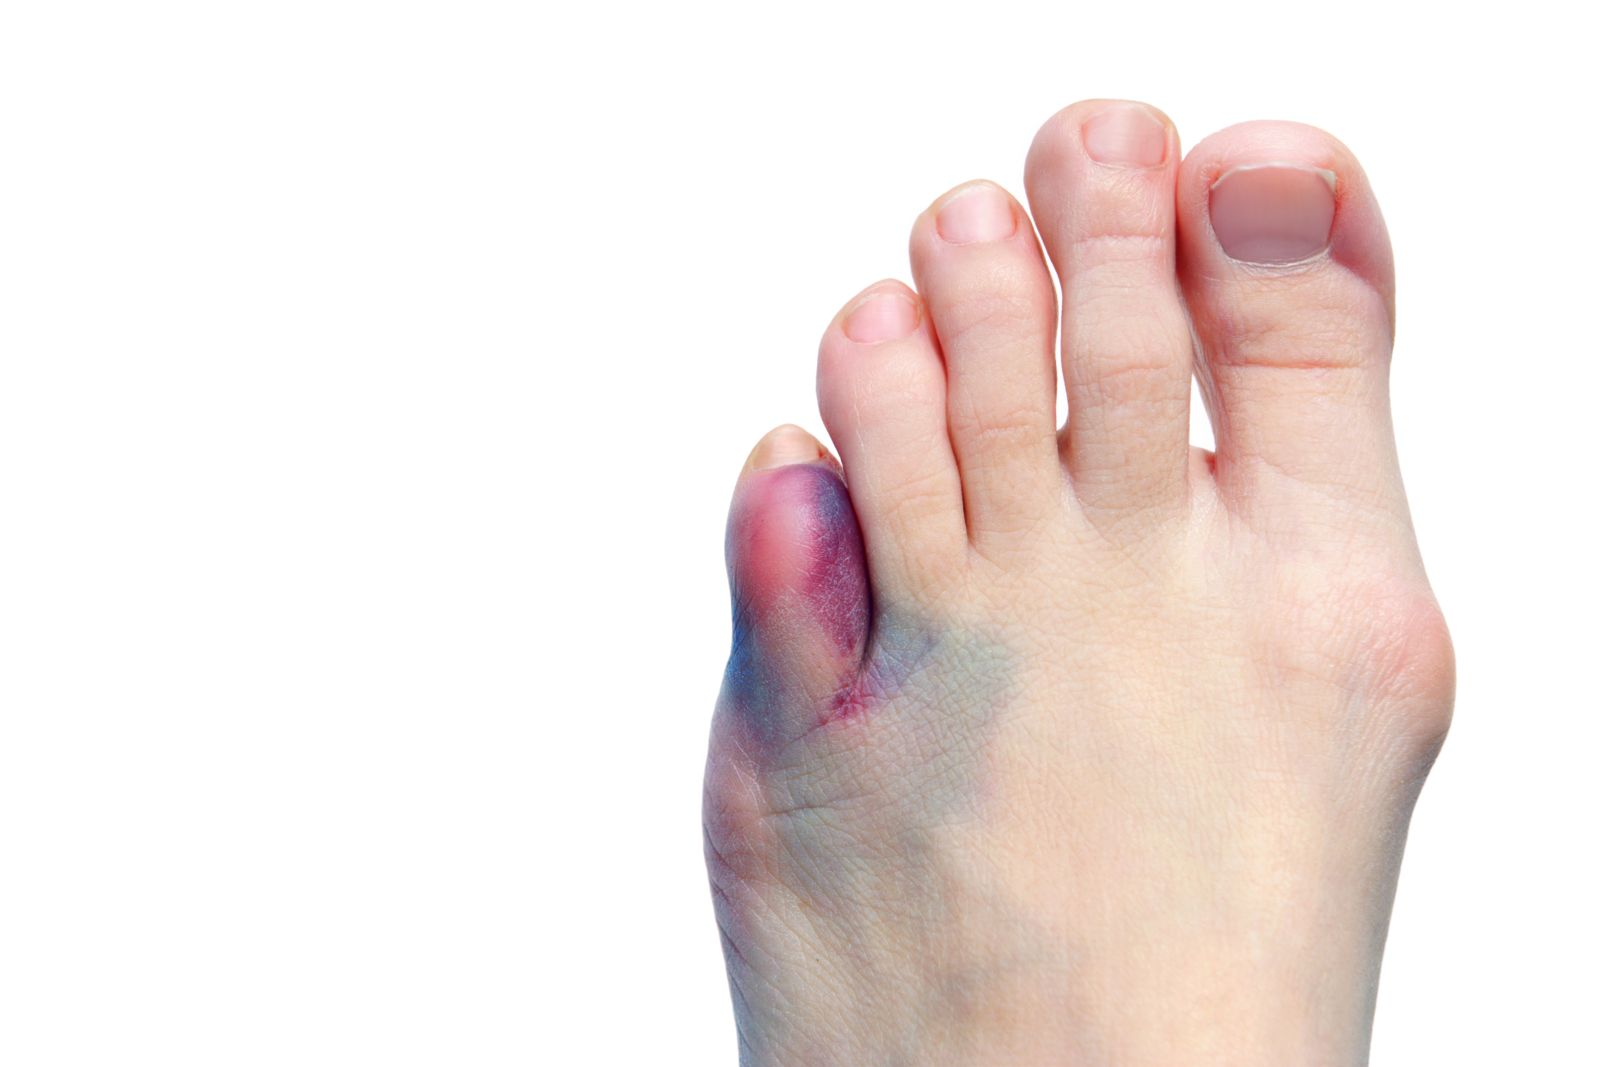 Houston podiatrist discusses Bethenny Frankel's broken toe